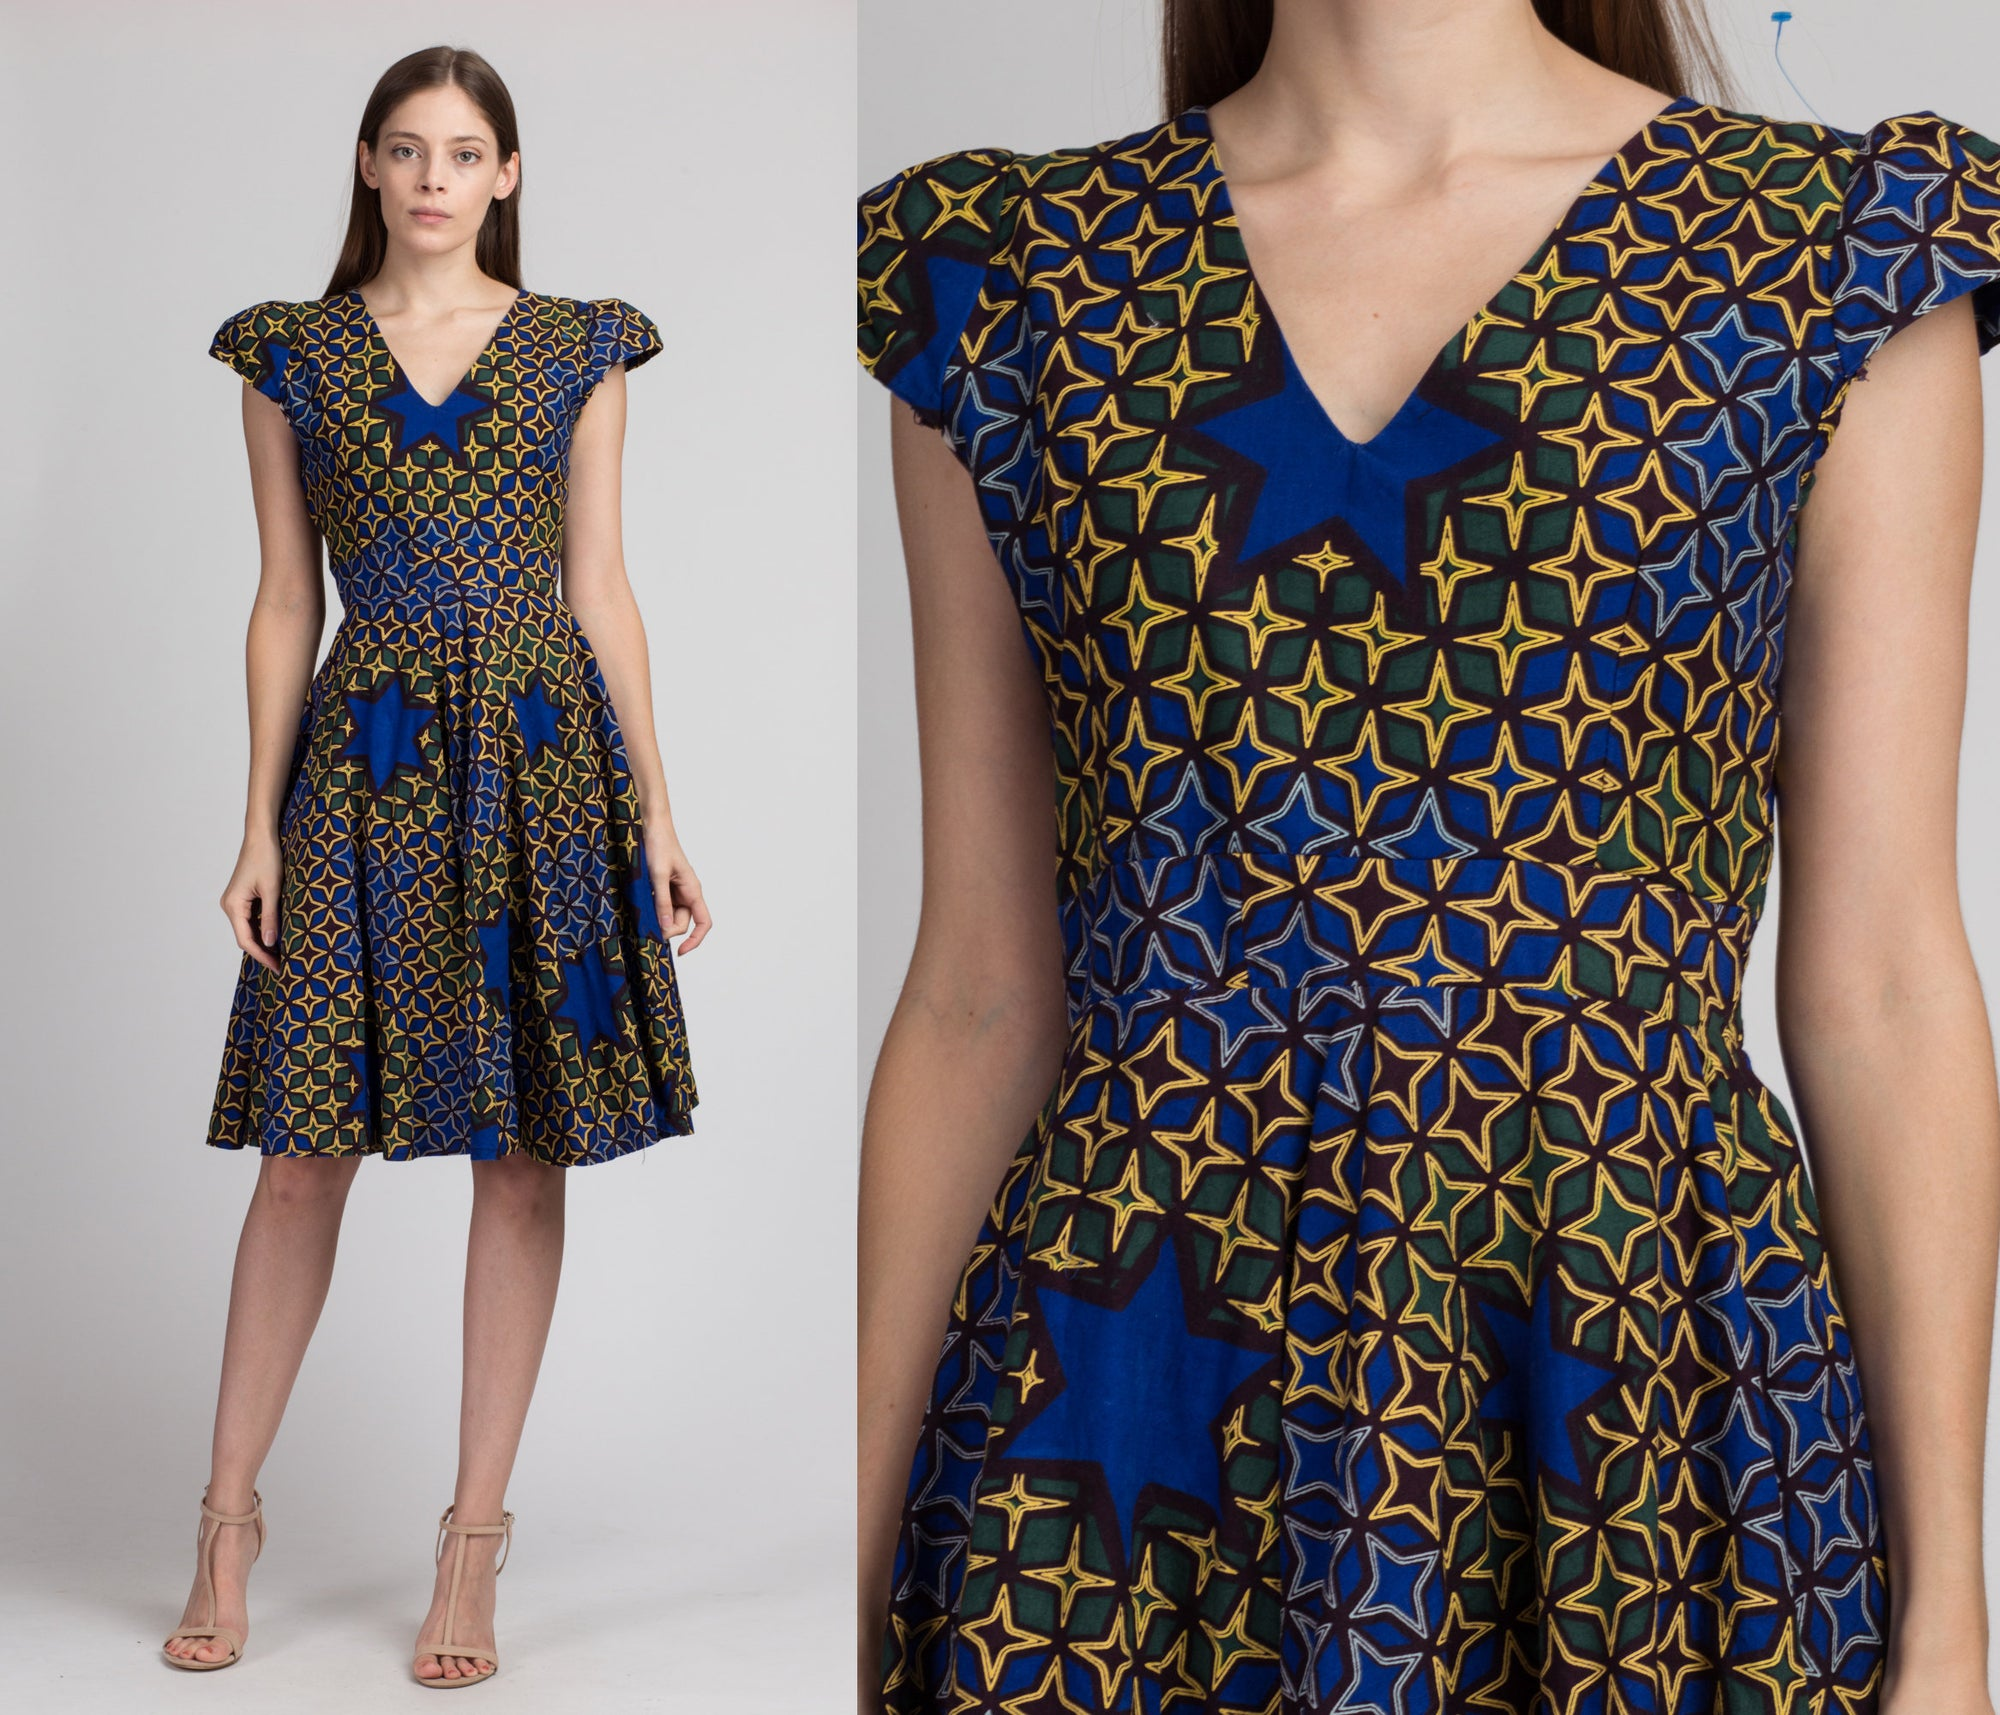 Vintage African Ankara Wax Print Dress - Large